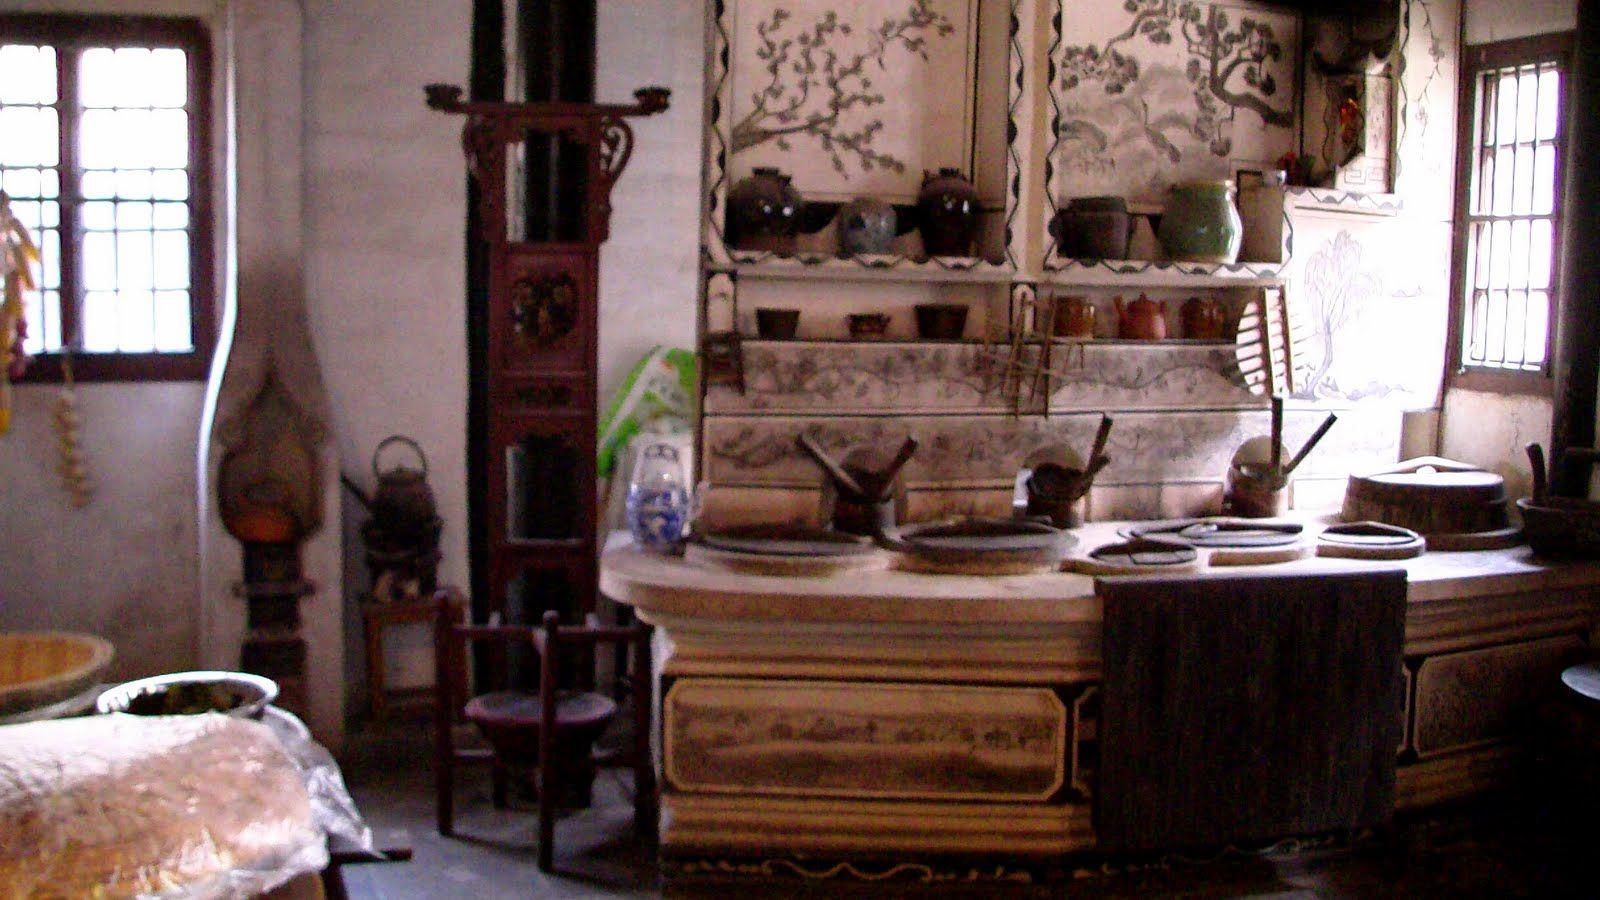 Traditional Chinese kitchen | Restaurant in 2019 ... on saltbox kitchen ideas, exotic kitchen ideas, high gloss black kitchen ideas, craft kitchen ideas, retro kitchen ideas, vintage small kitchen ideas, pewter kitchen ideas, rustic kitchen ideas, fiesta kitchen ideas, glass kitchen ideas, mahogany kitchen ideas, italy kitchen ideas, country kitchen ideas, california kitchen ideas, pine kitchen ideas, furniture kitchen ideas, chinese kitchen ideas, stained kitchen ideas, easy install kitchen backsplash ideas, outdated kitchen ideas,